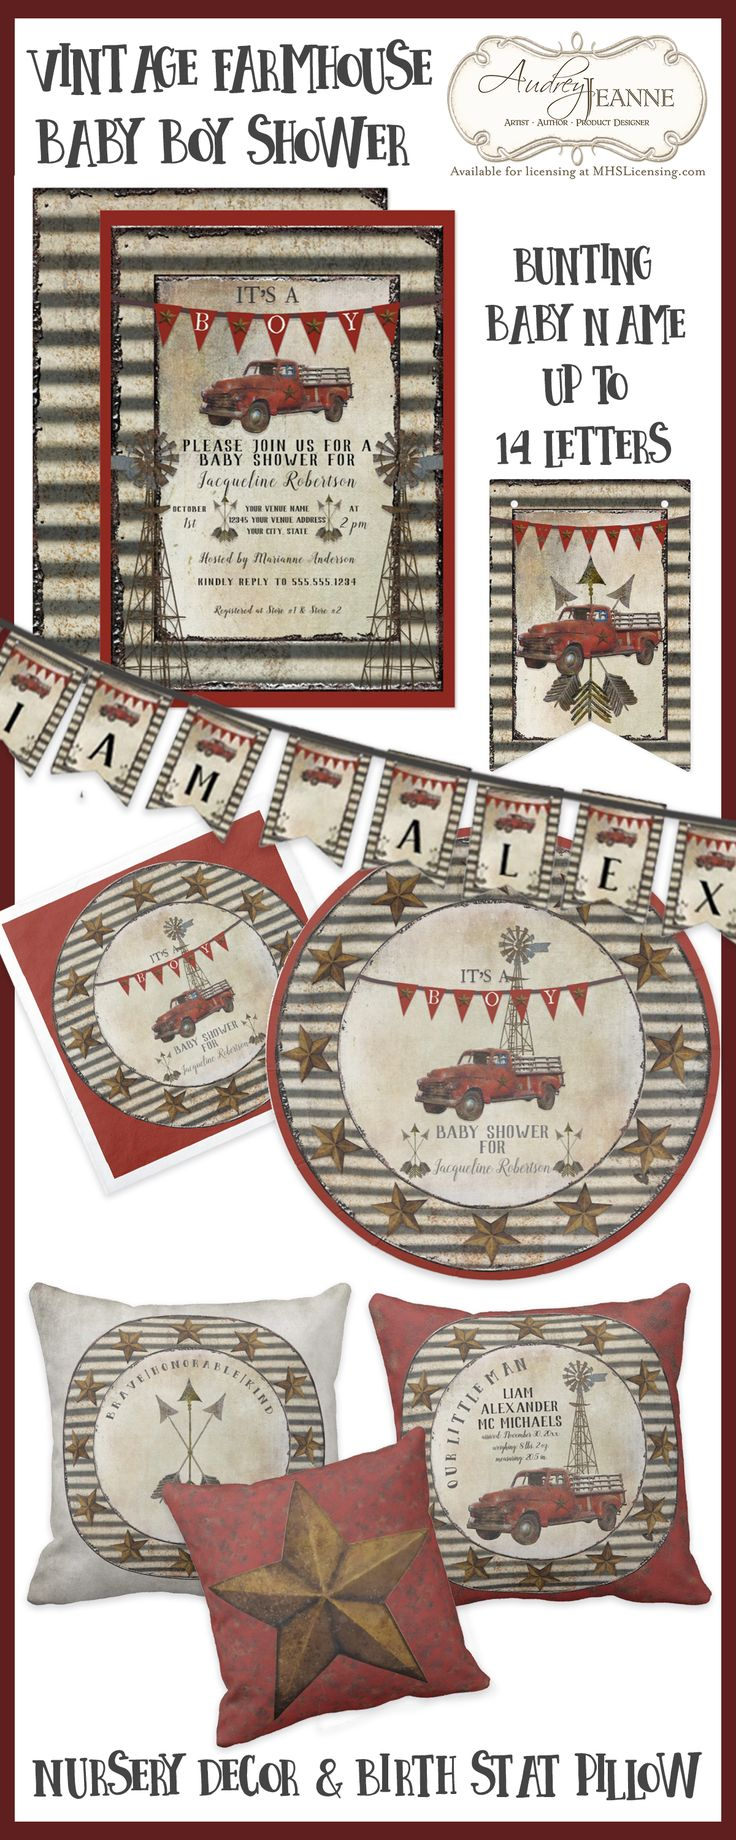 FARMHOUSE Rustic Country Baby Boy Shower & Nursery Decor | Original artwork in a worn rusted style perfect for Farm themed baby shower #rustic #farm #farmhouse #decor #baby #shower #boy #vintage #red #gray #black #tan #truck #boho #arrows #corrugated #rusted #tin #roofing #windmill #birthstats #pillow